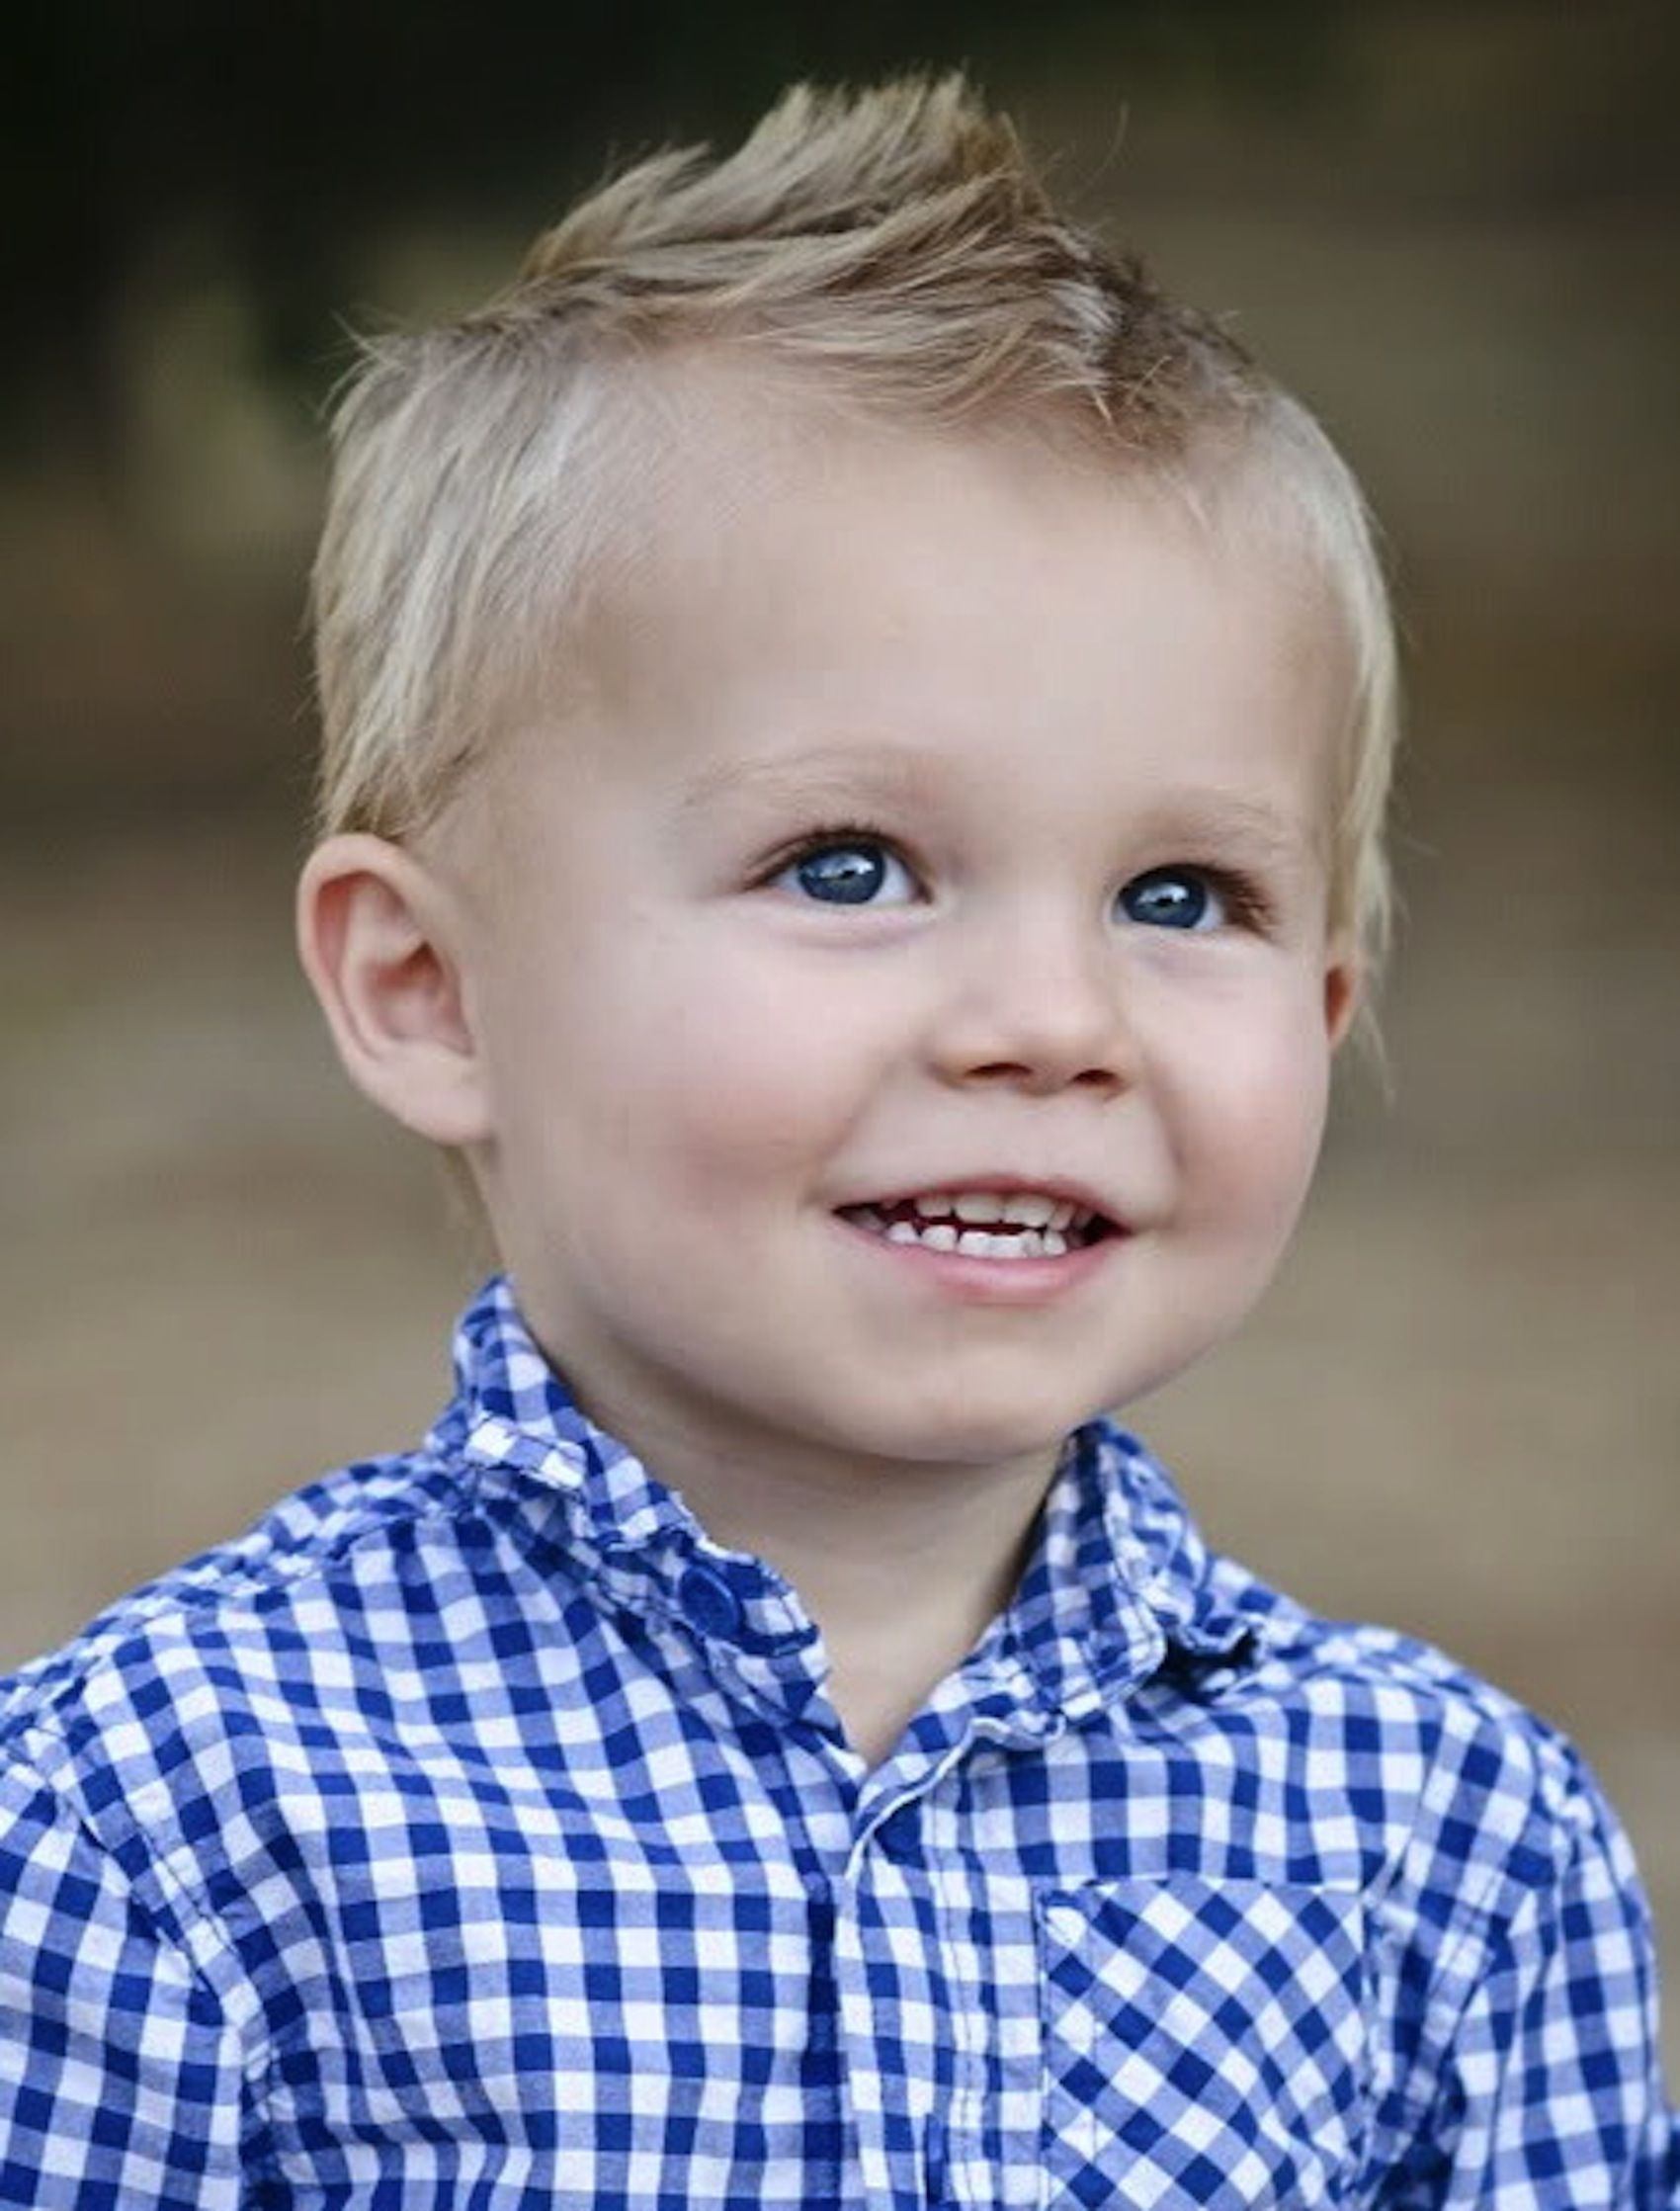 cute 2 year old child - google search | cute kids | baby boy